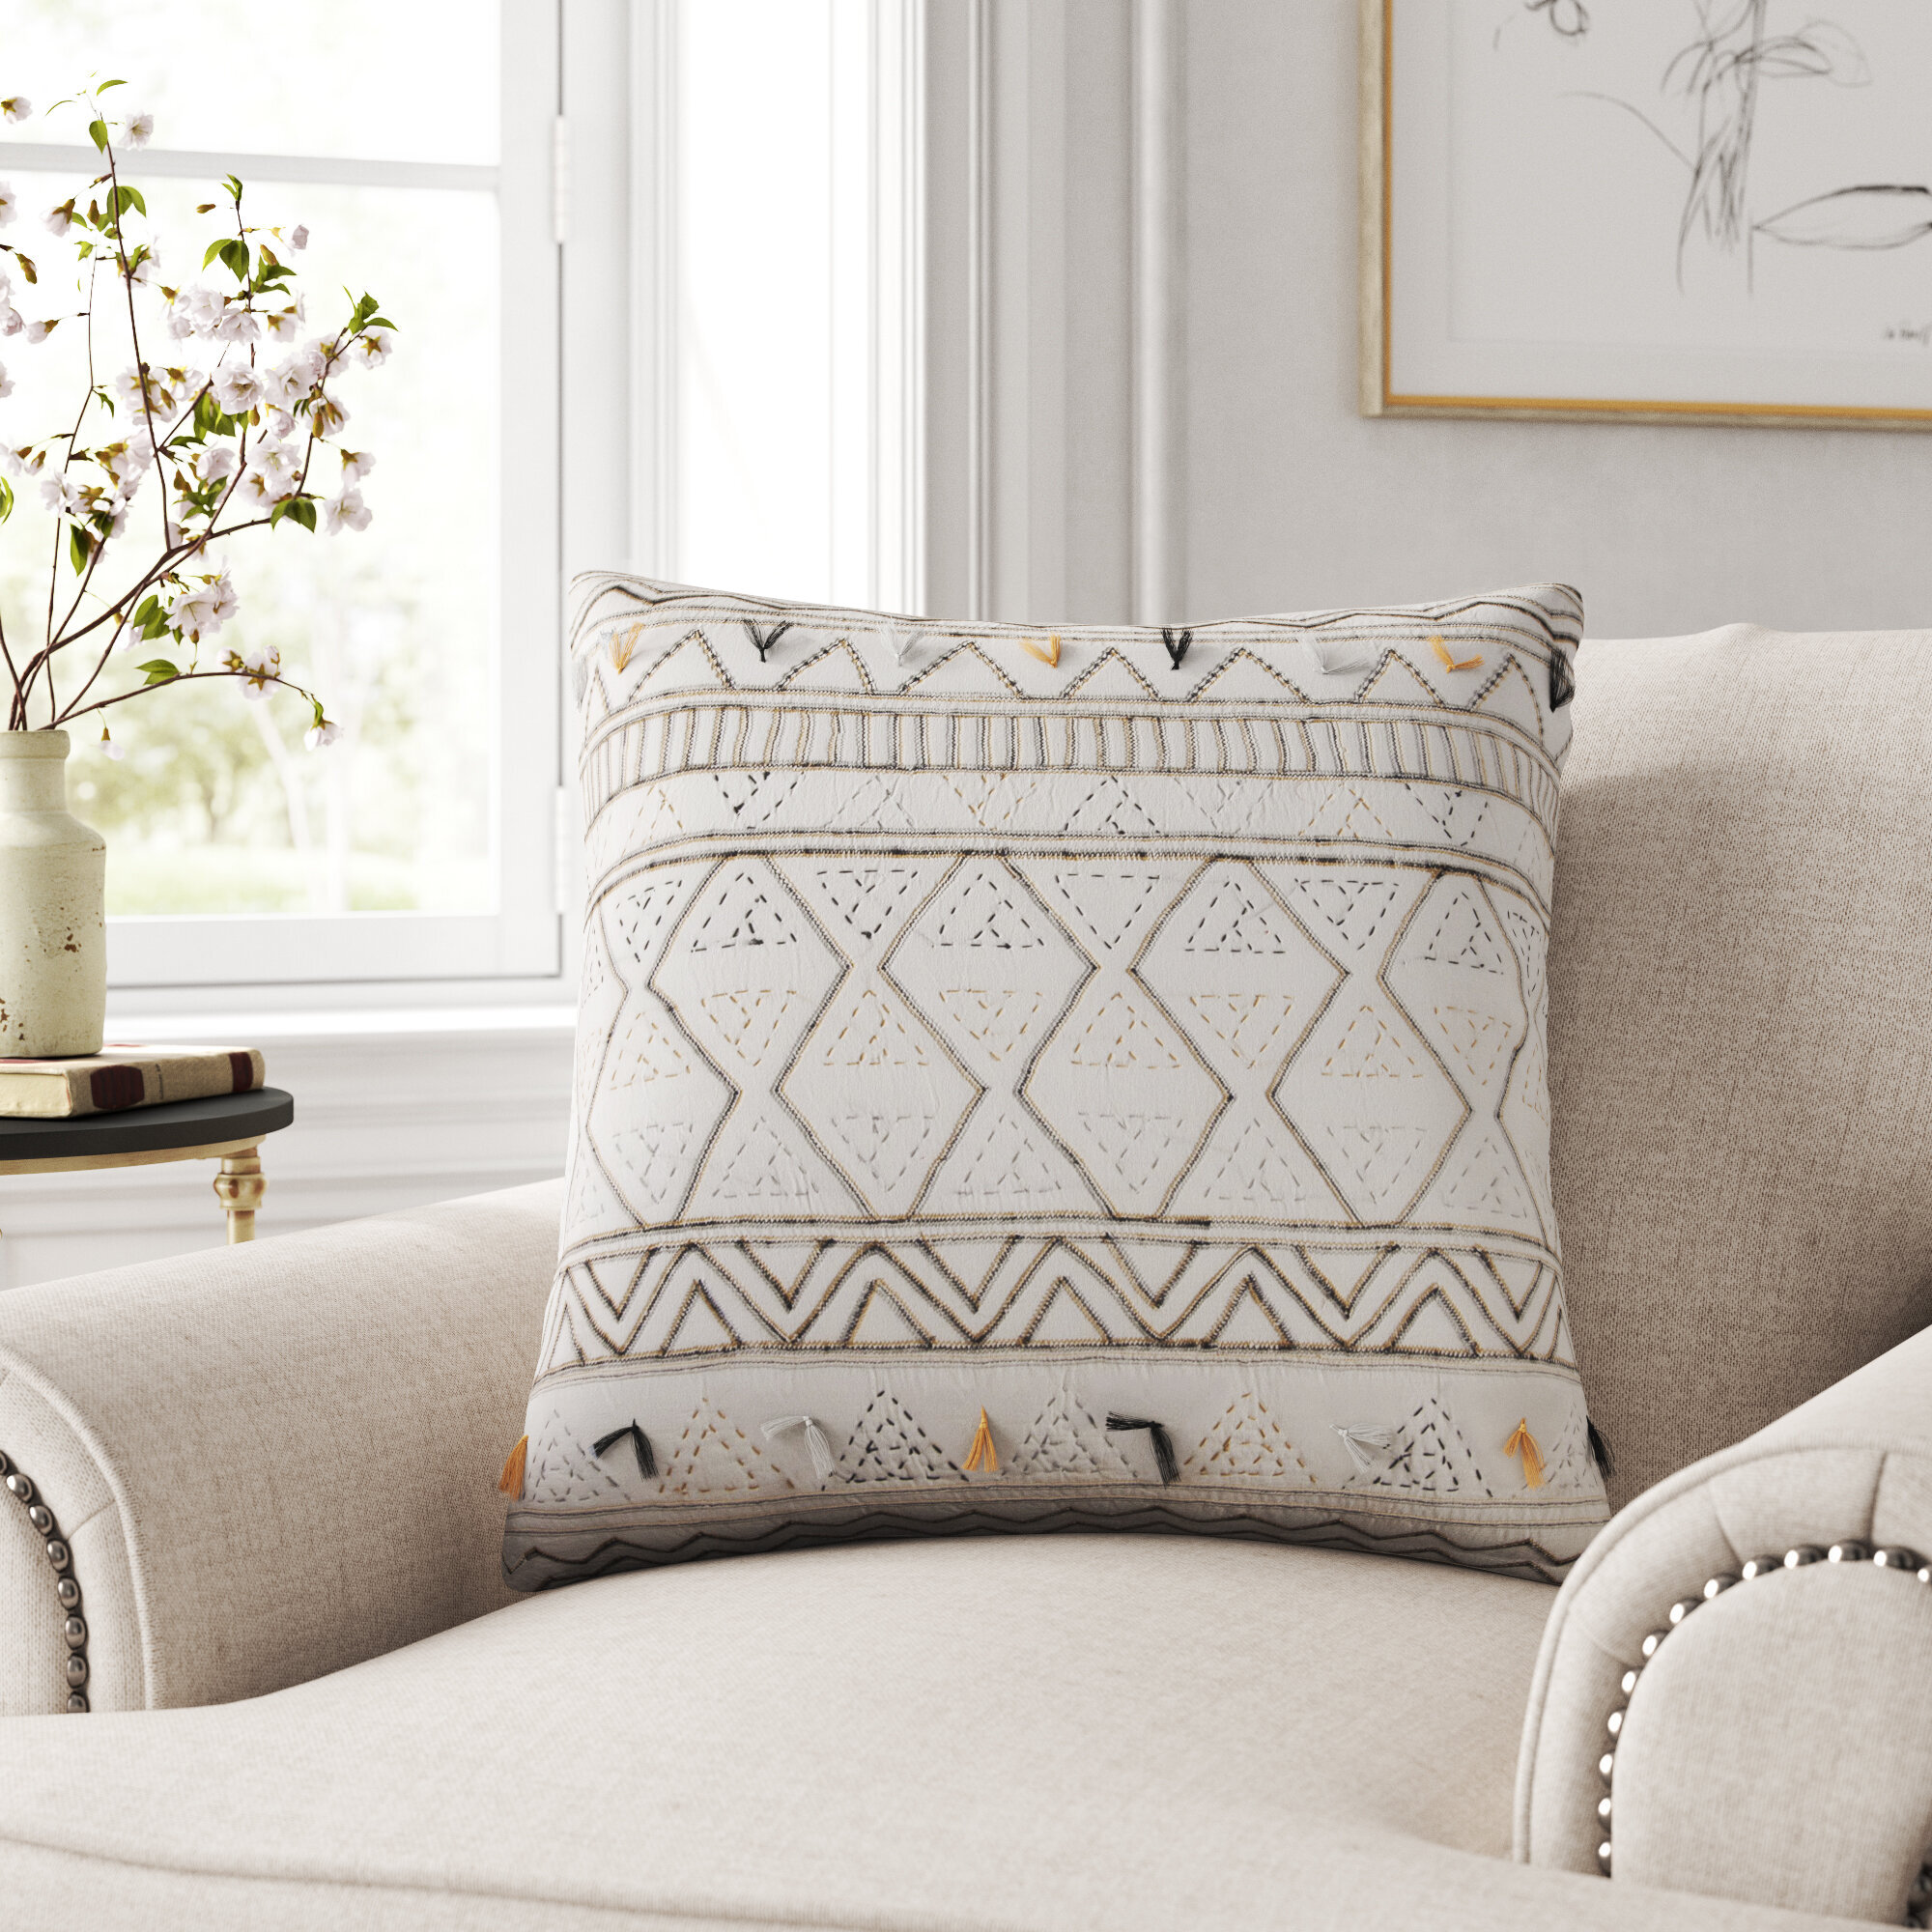 Cottage Country Kelly Clarkson Home Throw Pillows You Ll Love In 2021 Wayfair